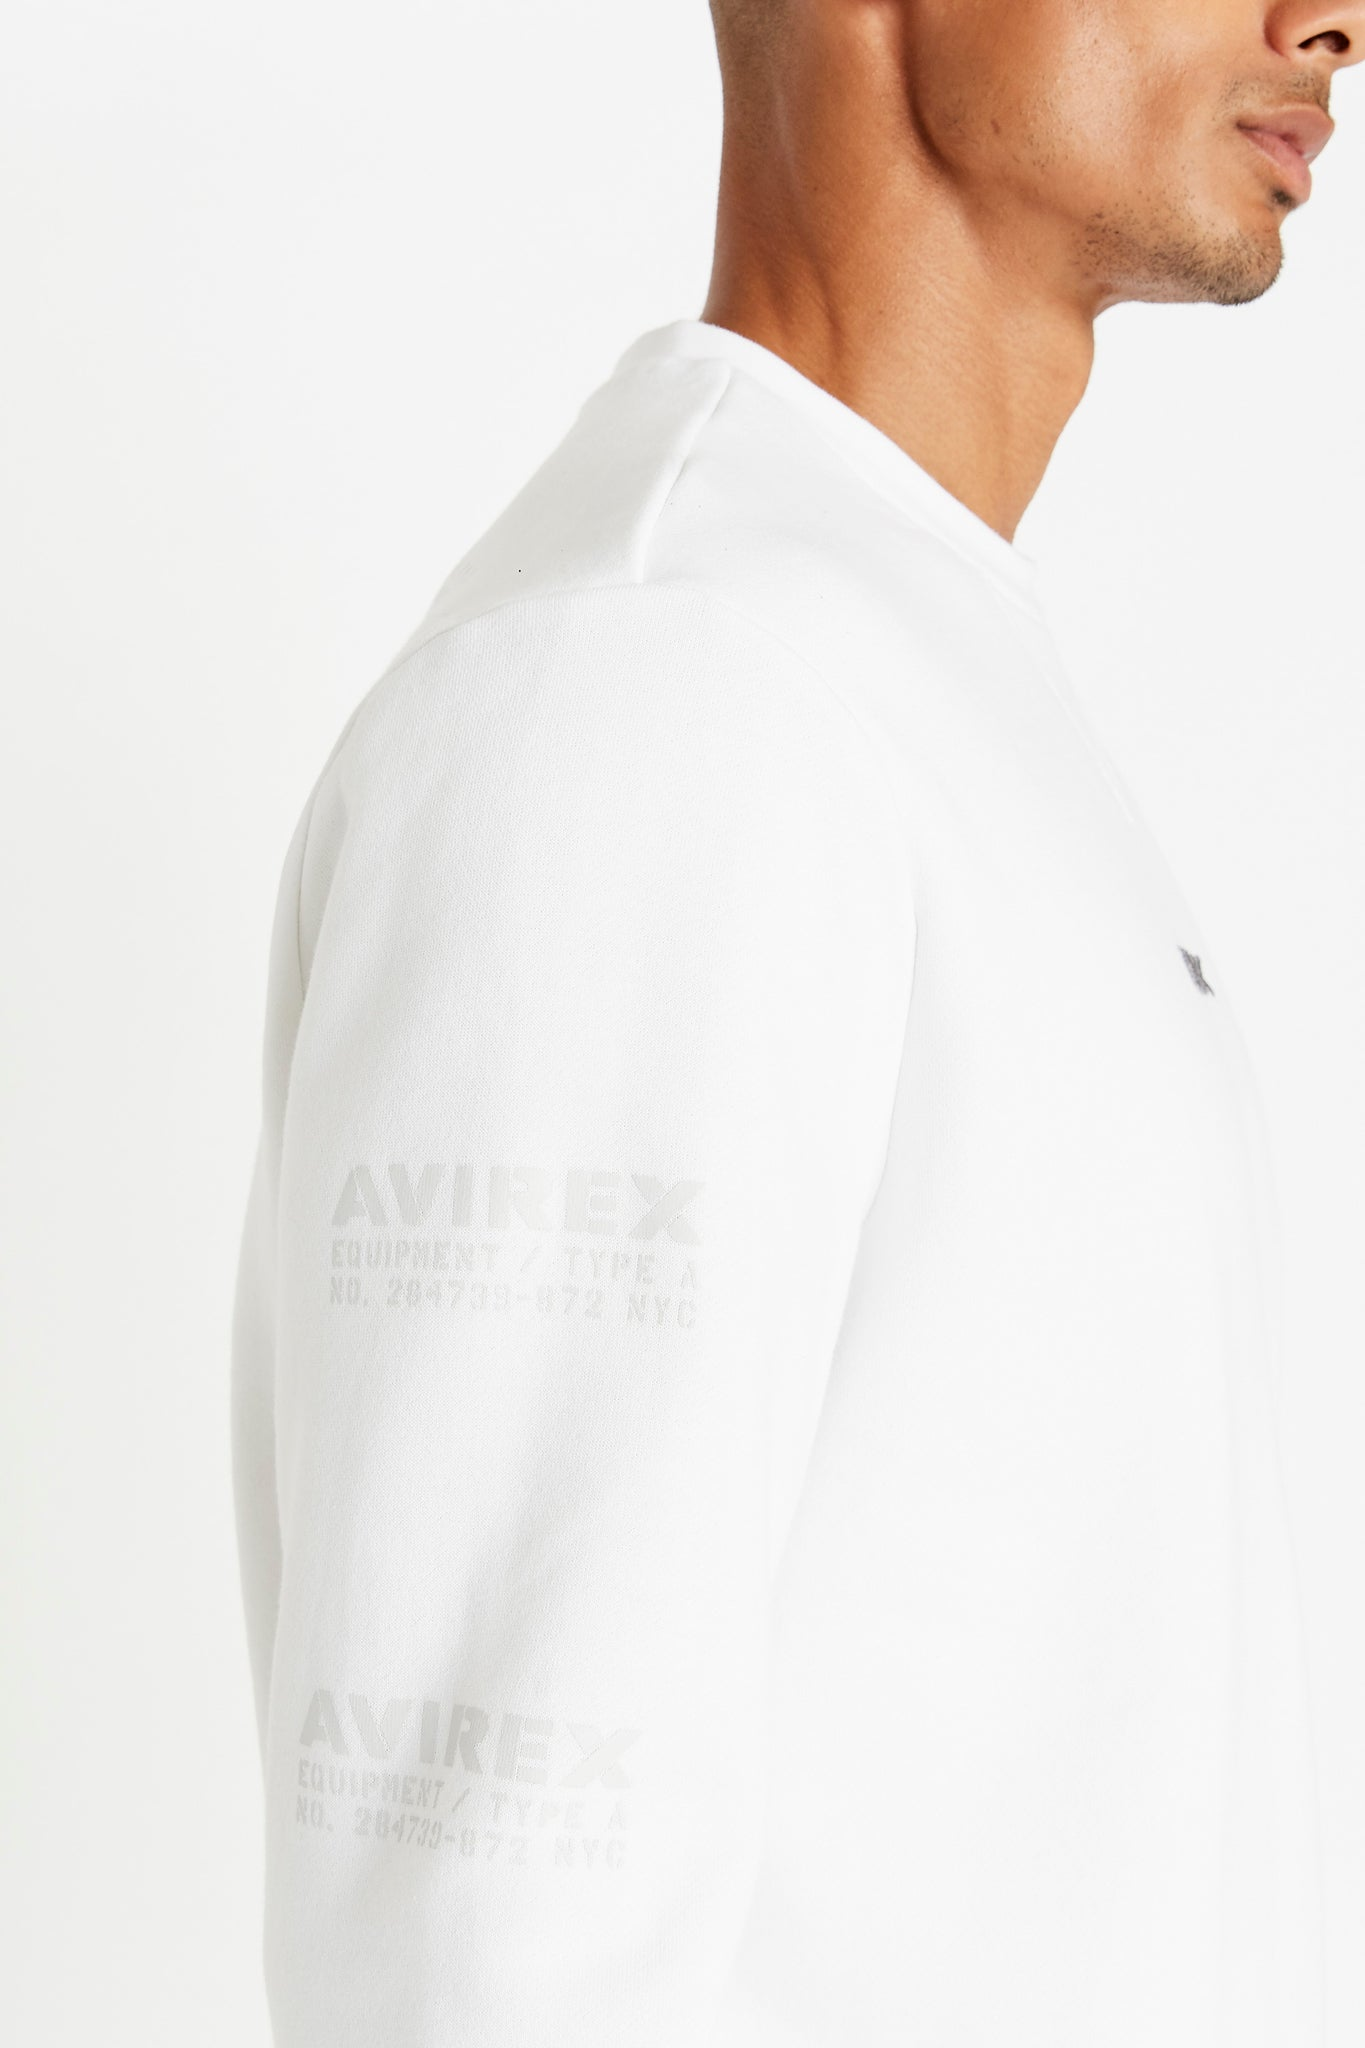 Detailed view of utility logo print on right sleeve